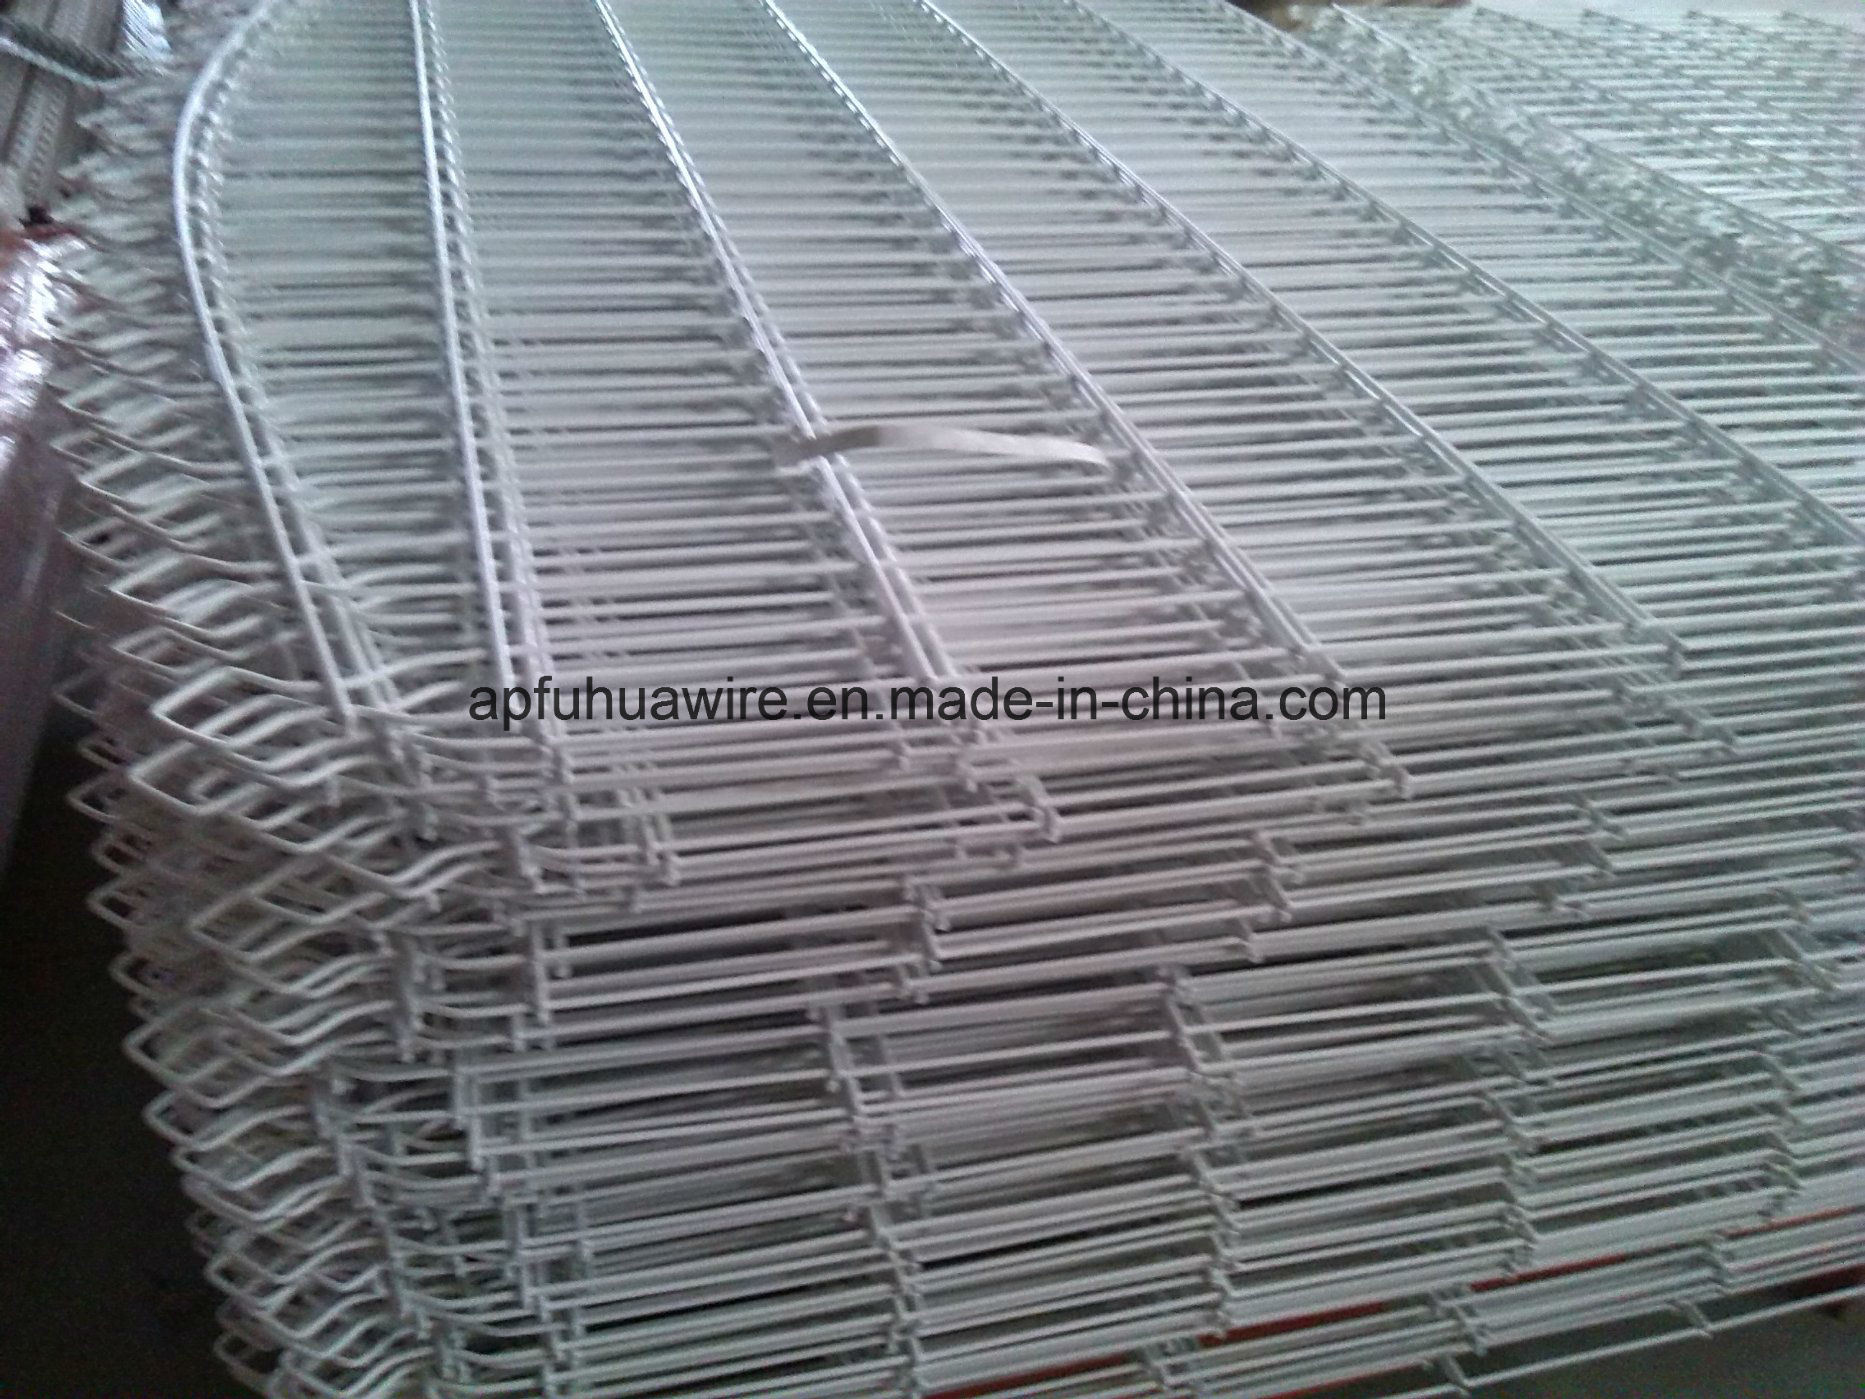 China Europe Style Wire Mesh Fence - China Fencing, Wire Mesh Fence